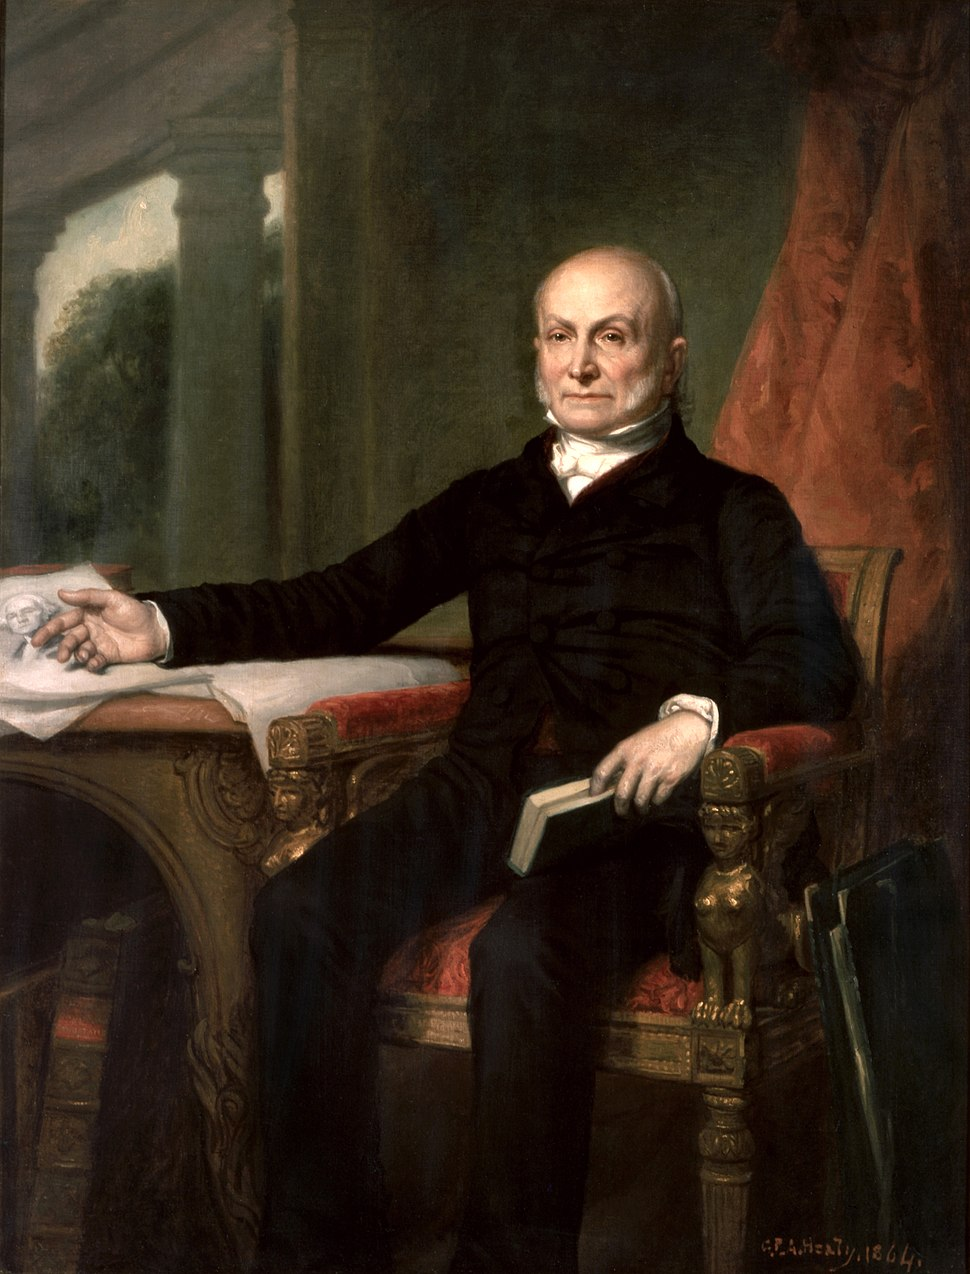 John Quincy Adams by GPA Healy, 1858